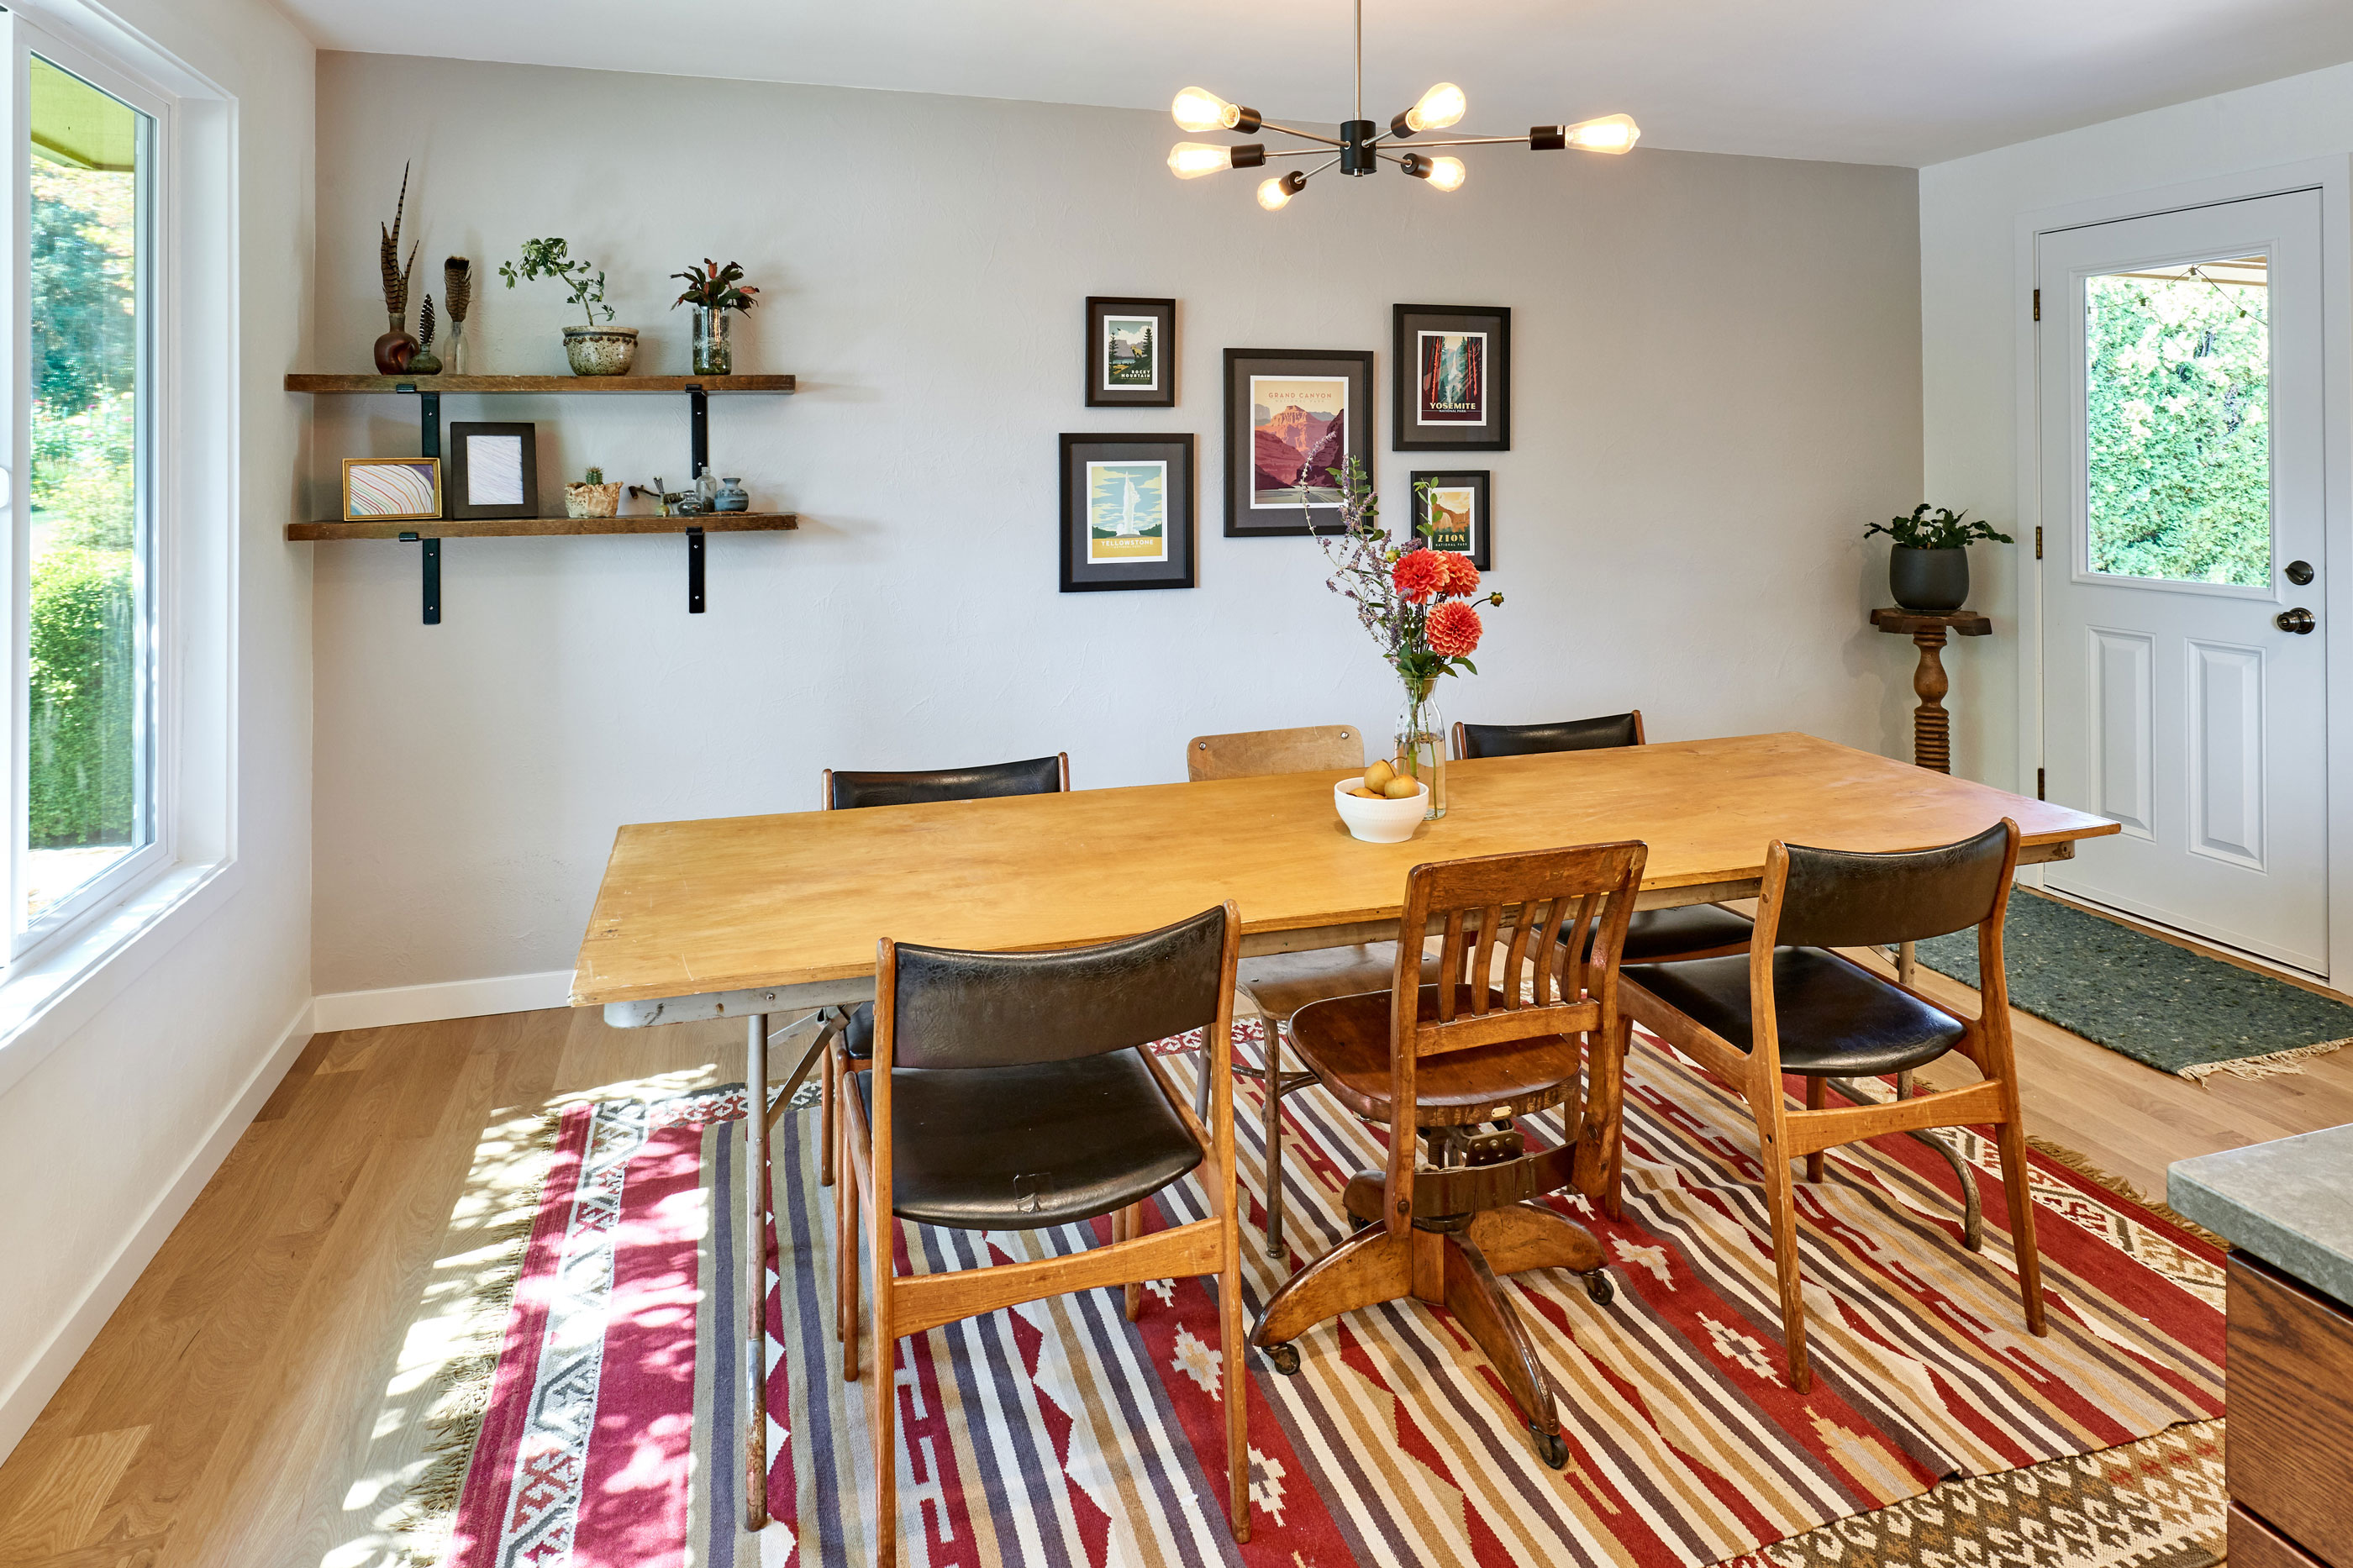 wooden dining table on aztec print rug with modern light fixture overhead